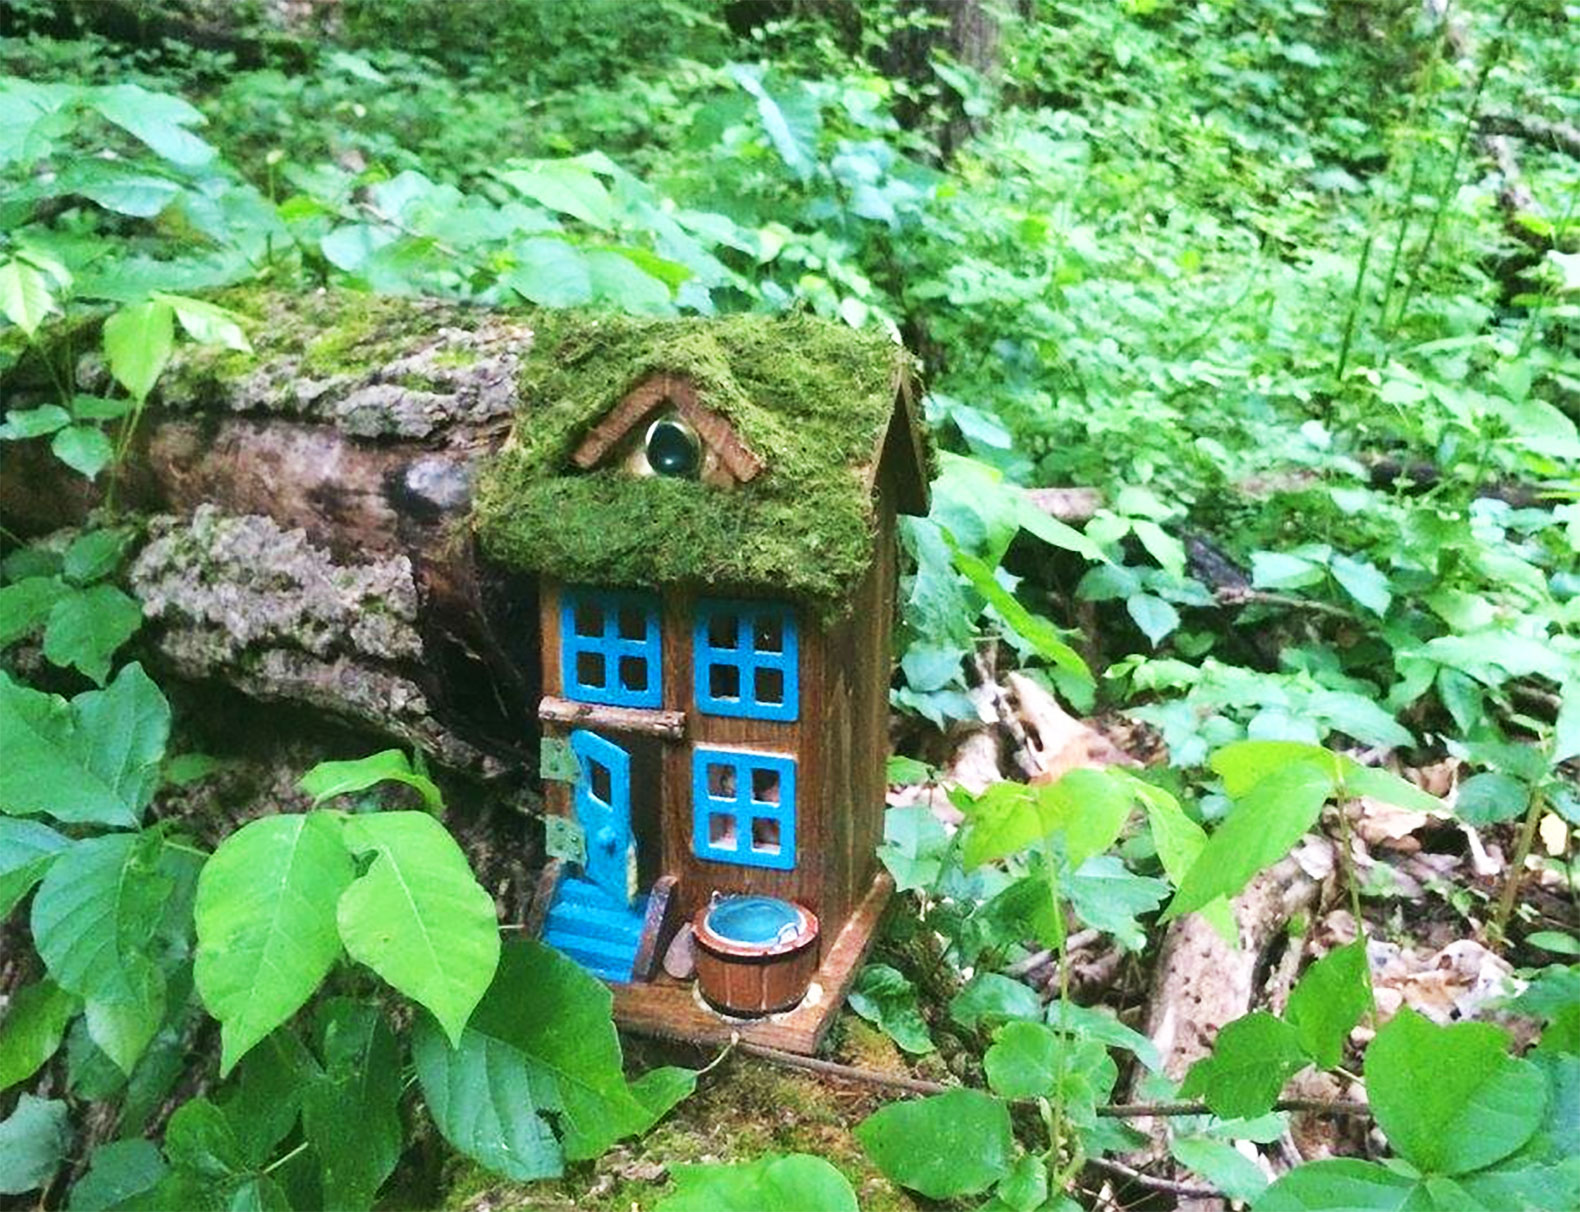 Mysterious itty bitty fairy houses line this NJ hiking trail